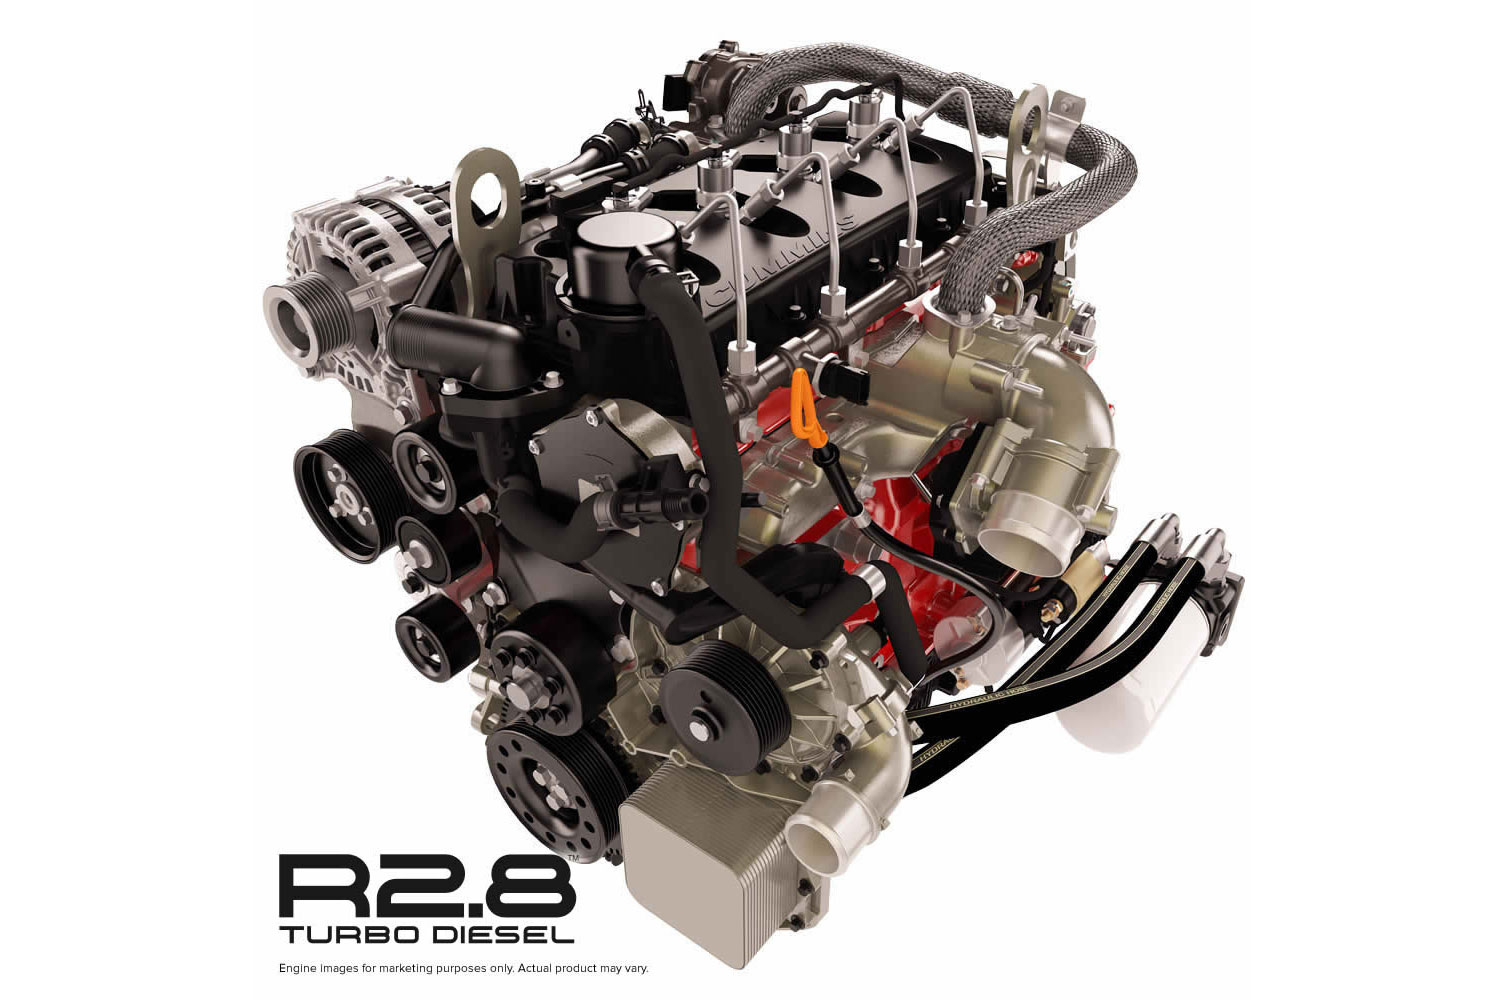 Cummins Starts Sales of Repower R2.8 Turbodiesel Crate Engine